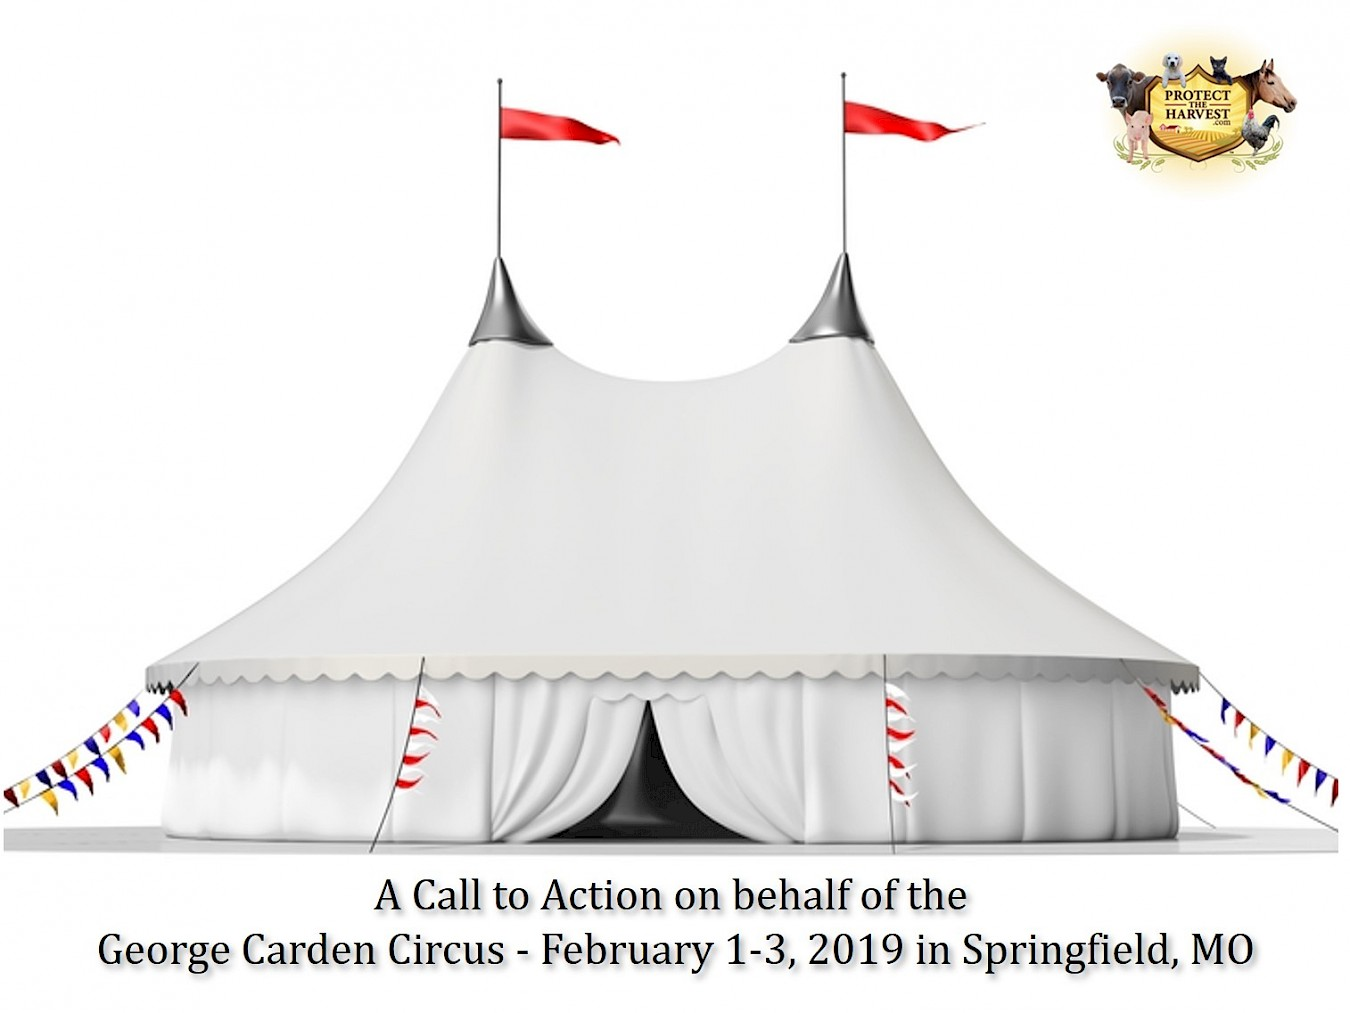 A Call to Action on Behalf of the George Carden Circus in Missouri